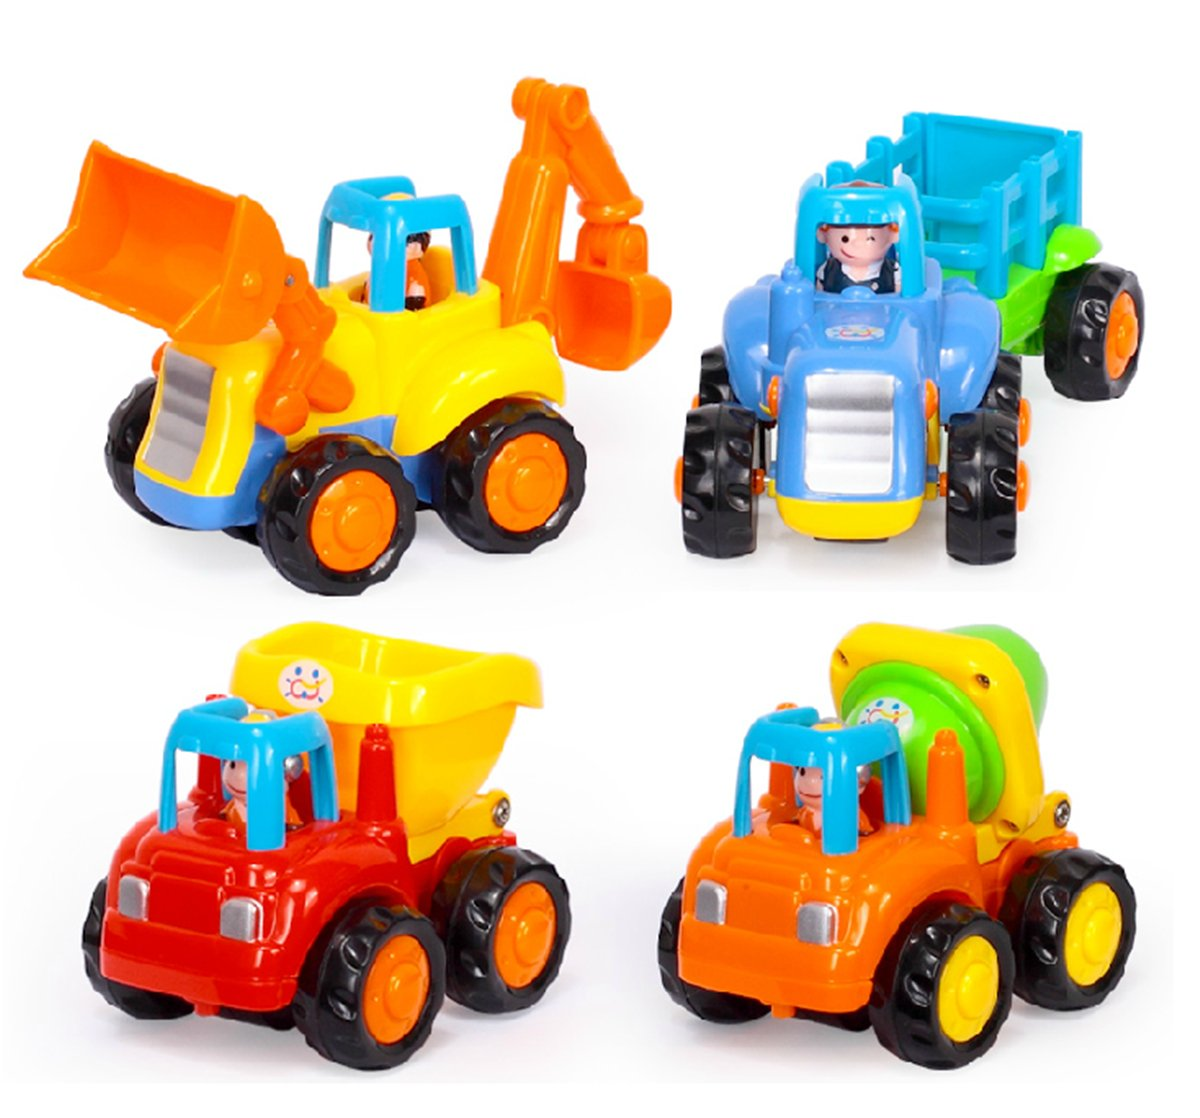 Toy Trucks For Four Year Old Boys : D mcark early educational toddler baby toy push and go